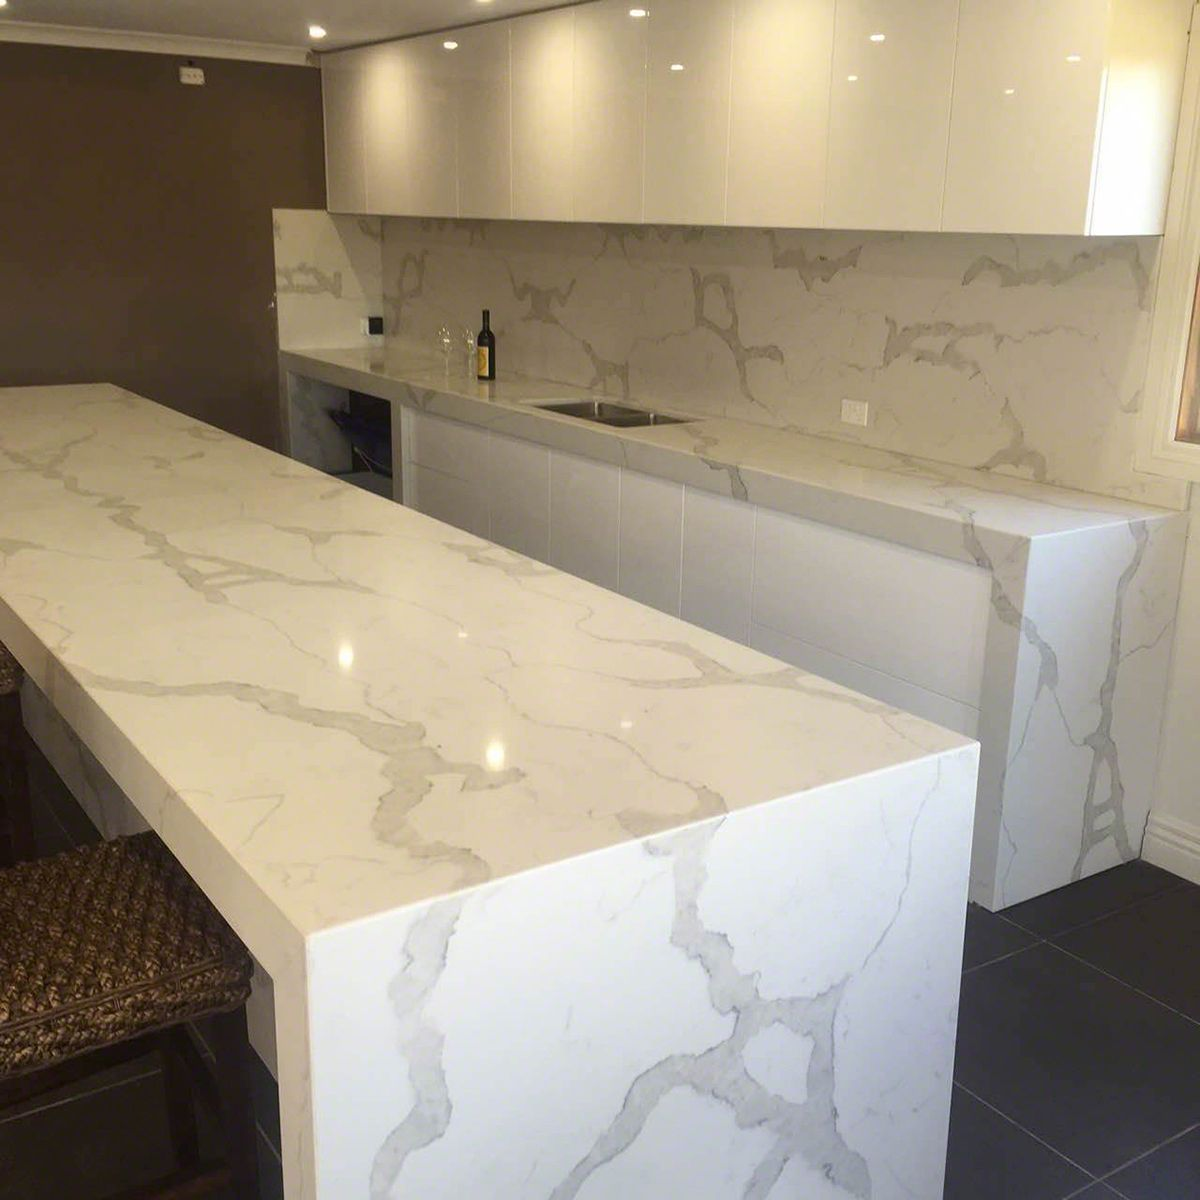 Calacatta Classique Stuns With Its Gorgeous White Marble Look And Striking Veining Transform Your